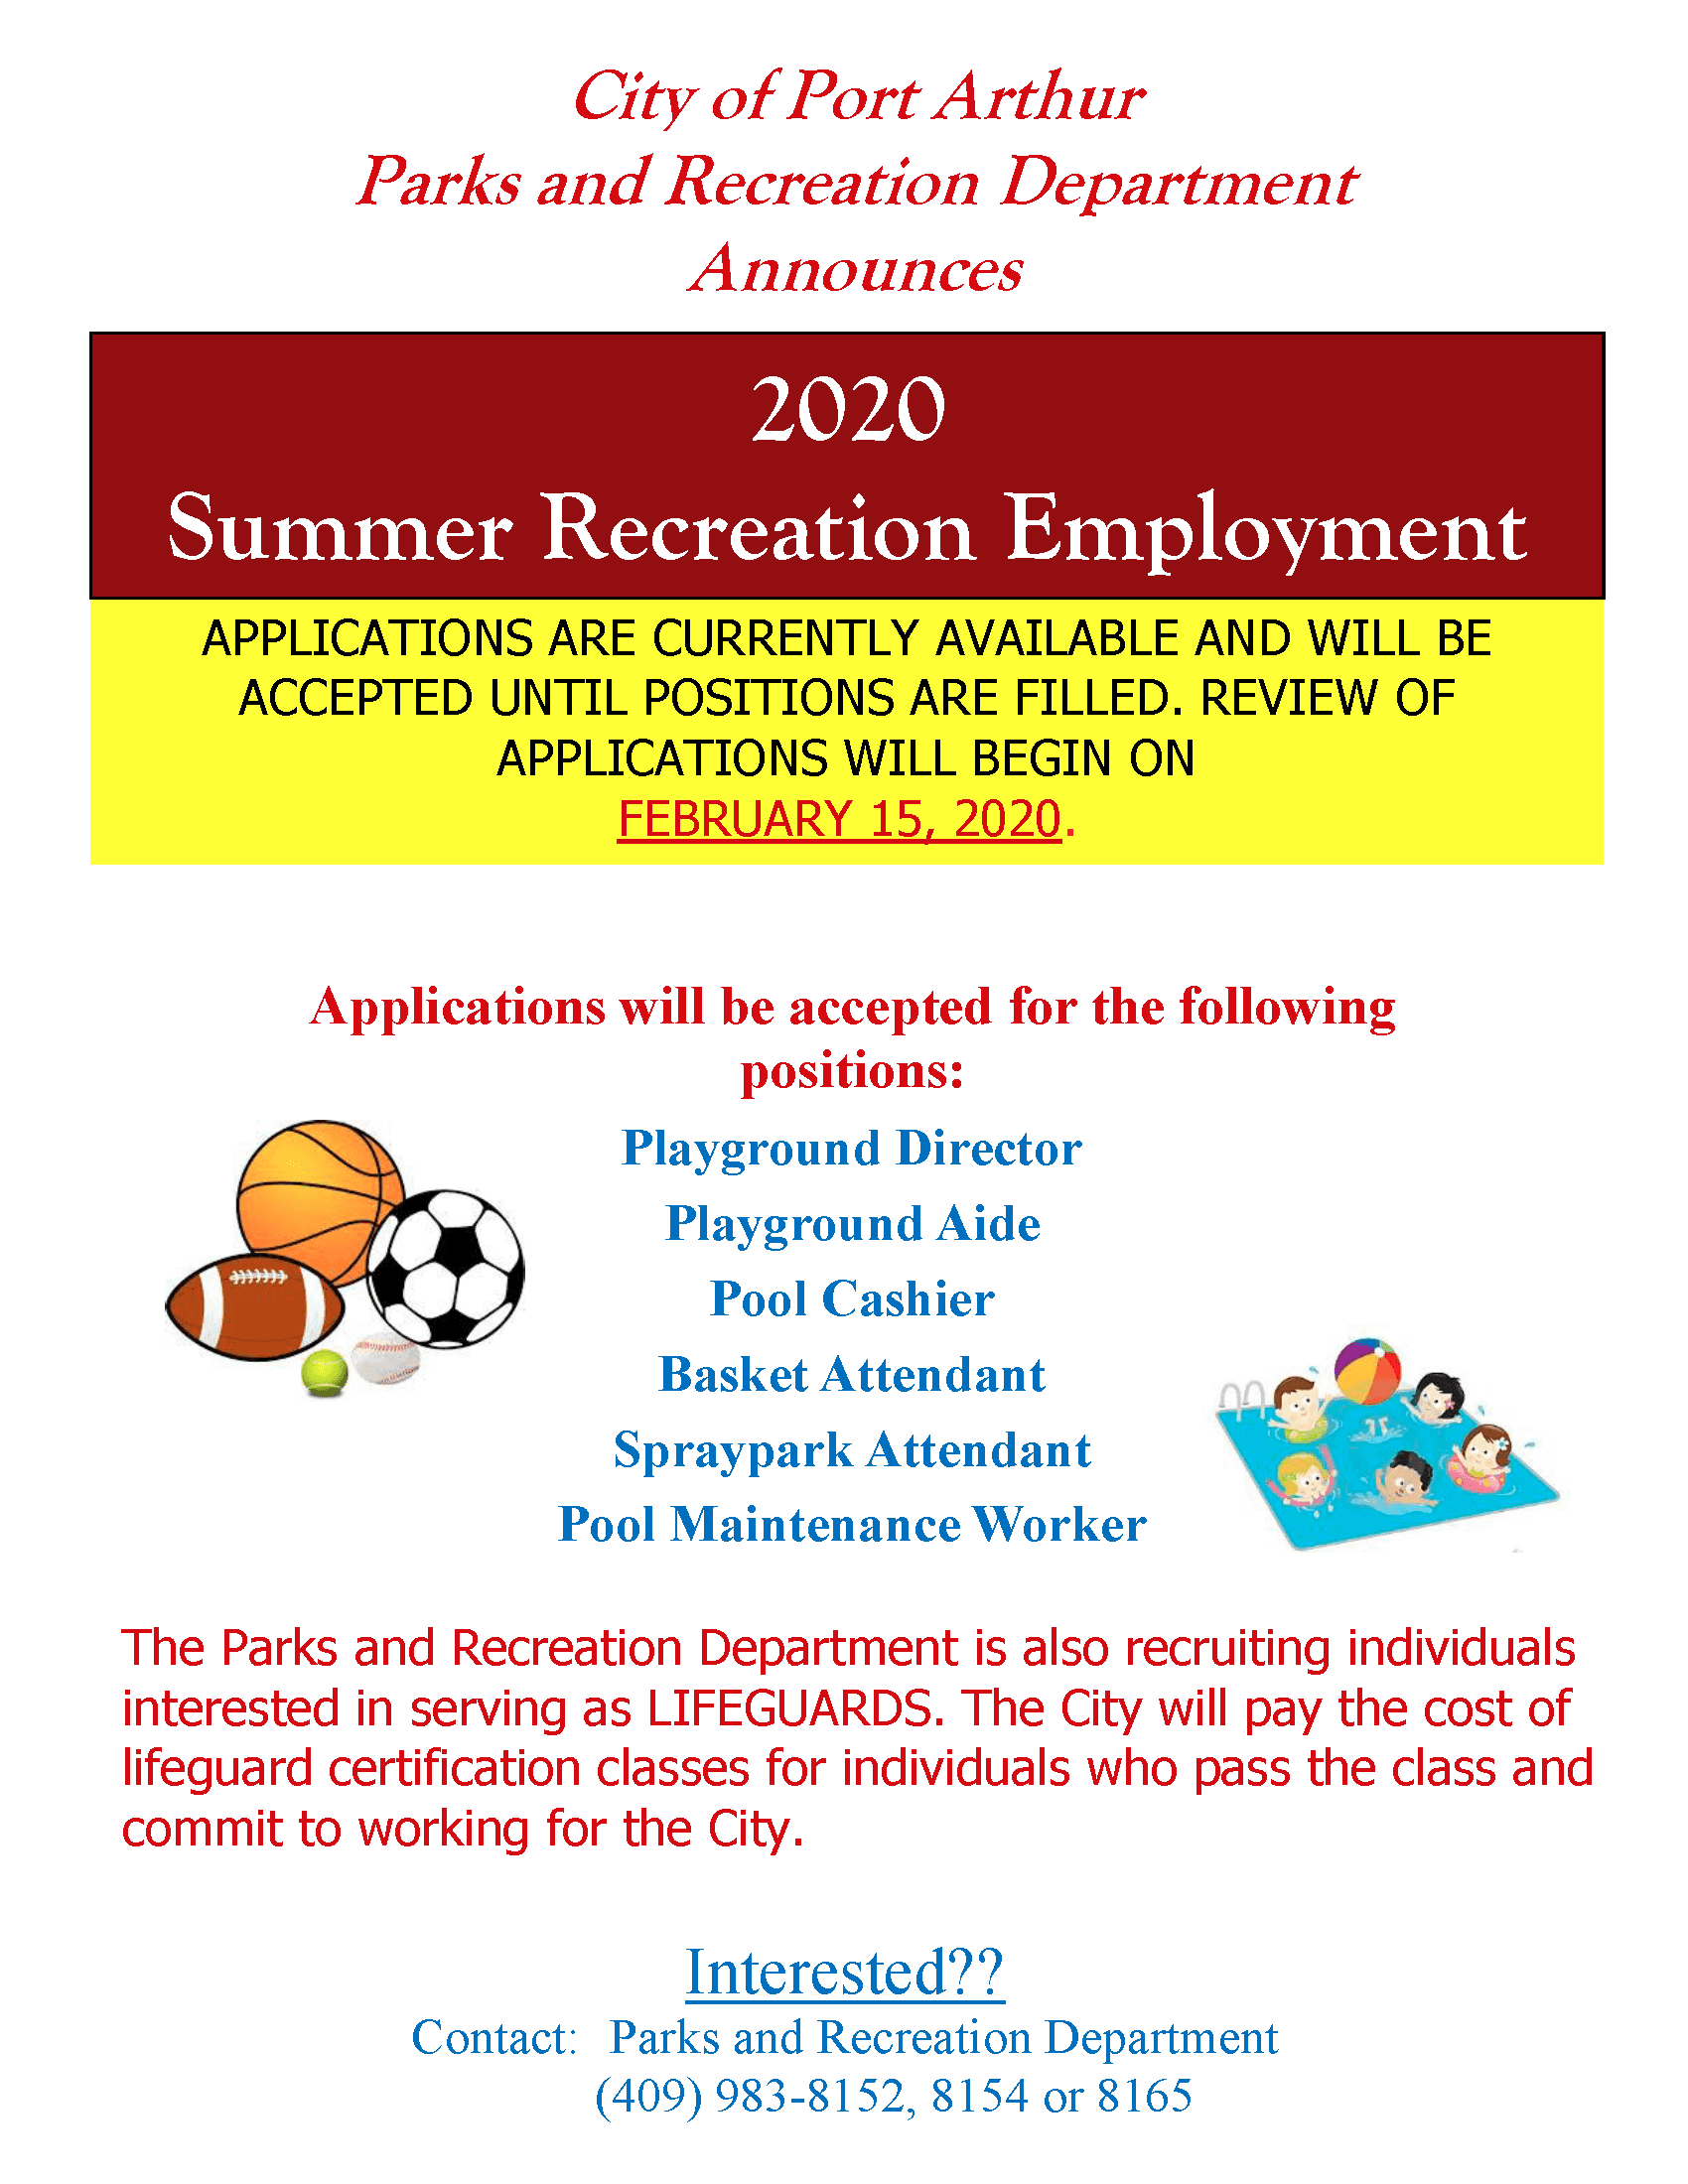 Summer Recreation Employment Flyer-2020